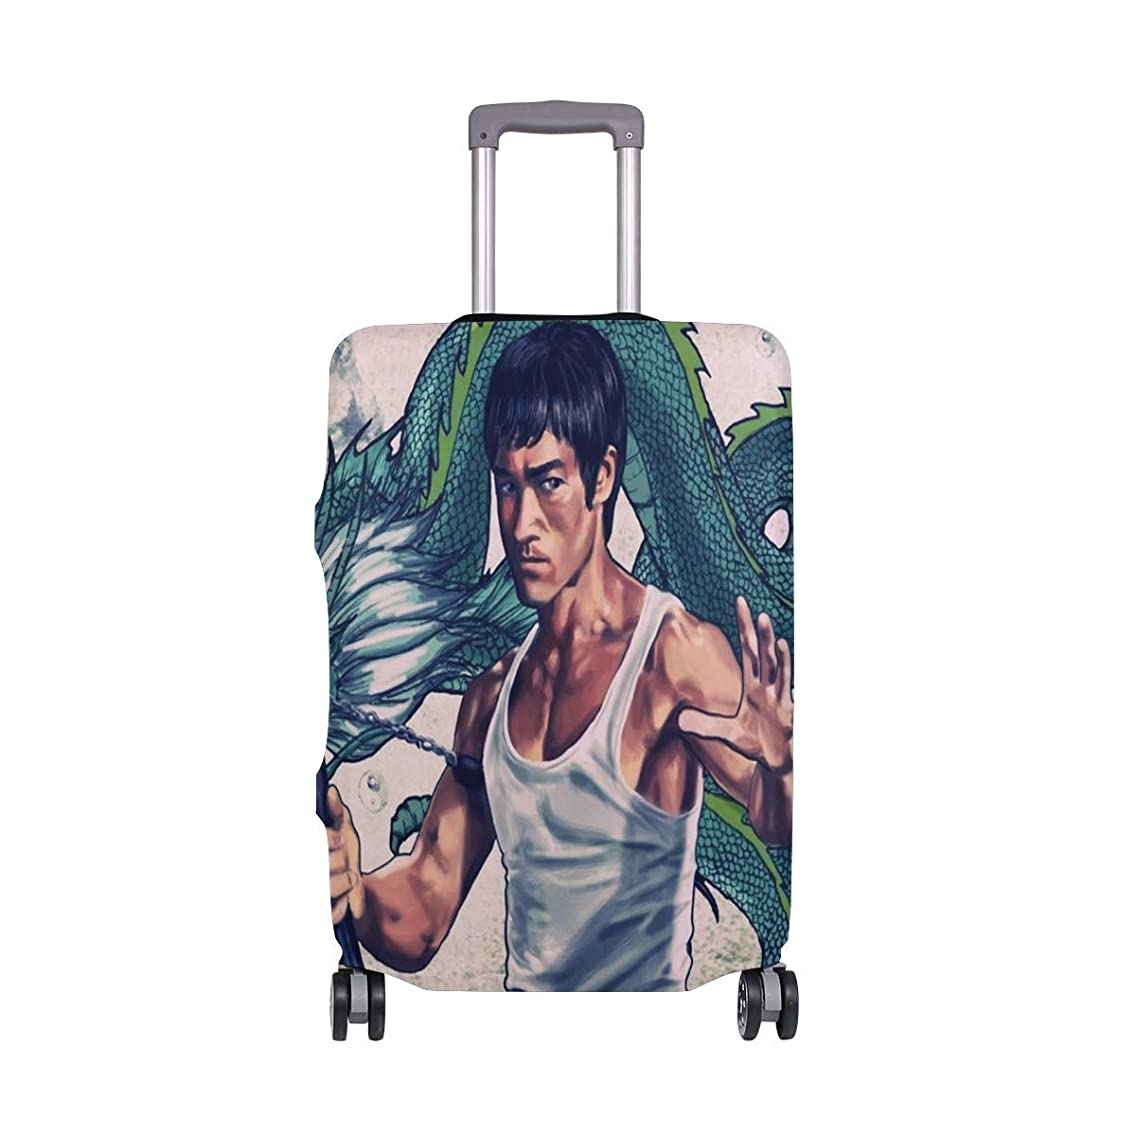 Bruce Lee And Dragon Travel Luggage Cover Luggage protector Spandex Suitcase Cove Protector For Travel Kids Men Women